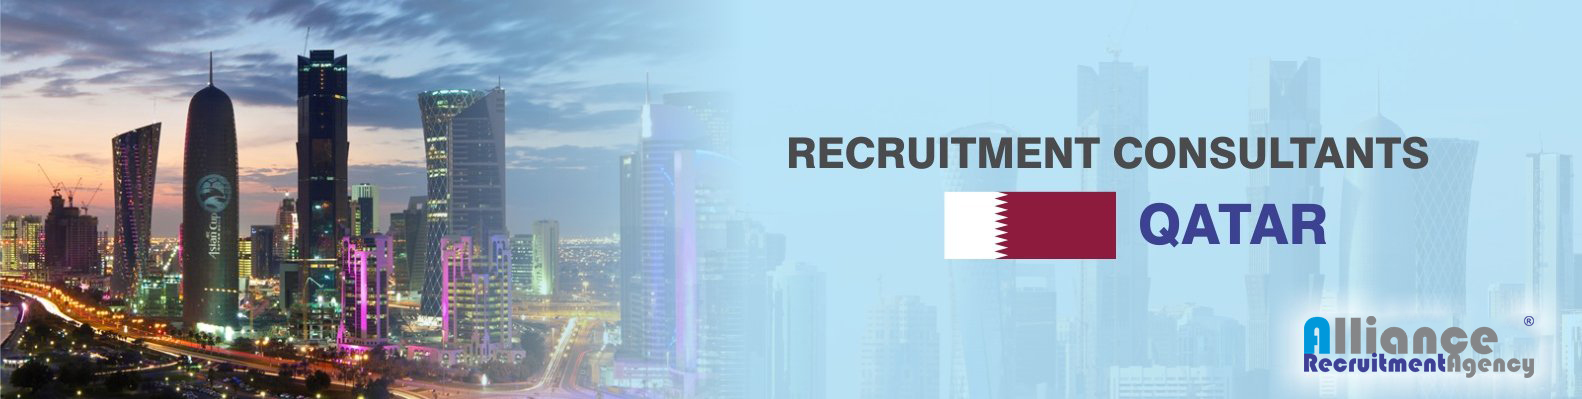 qatar recruitment agency